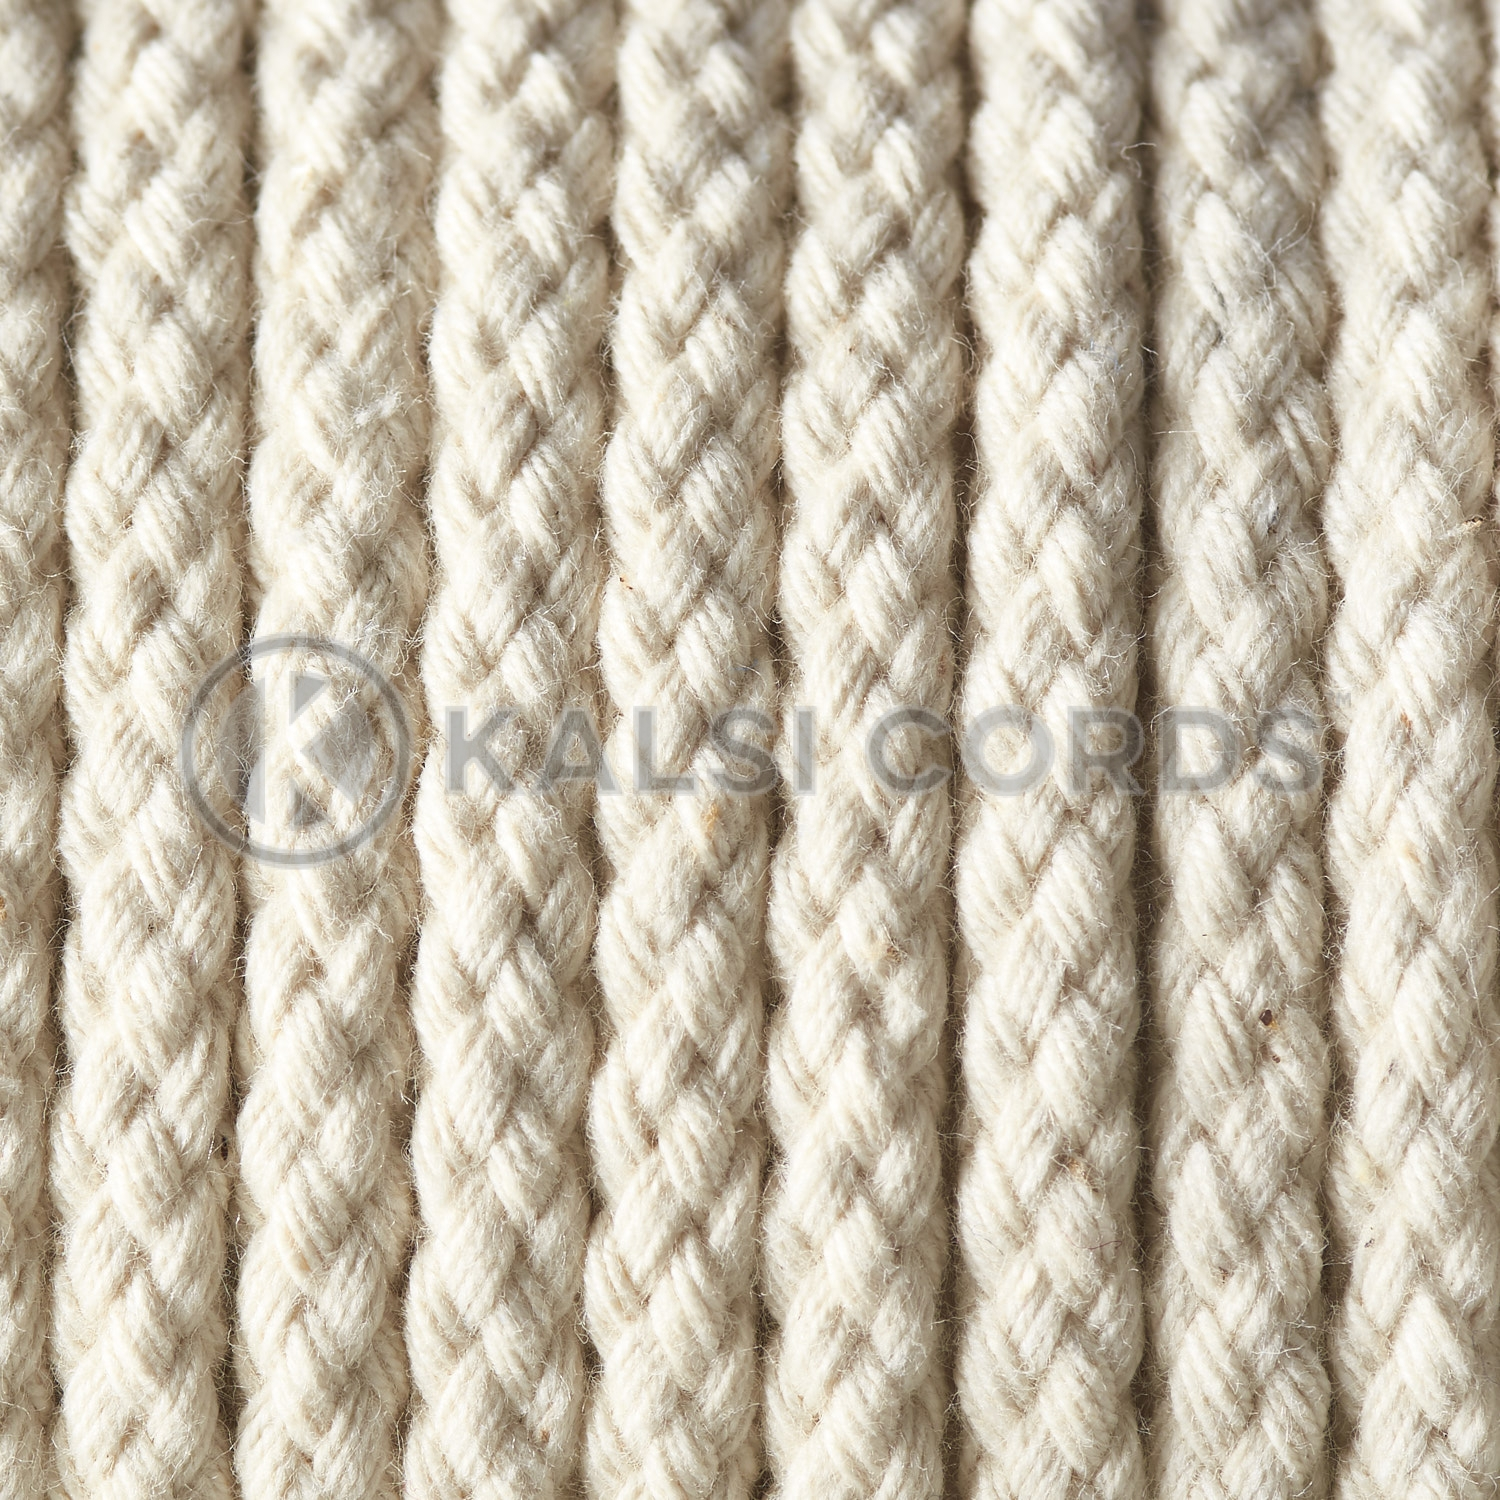 Natural 7mm Round Cotton Cord